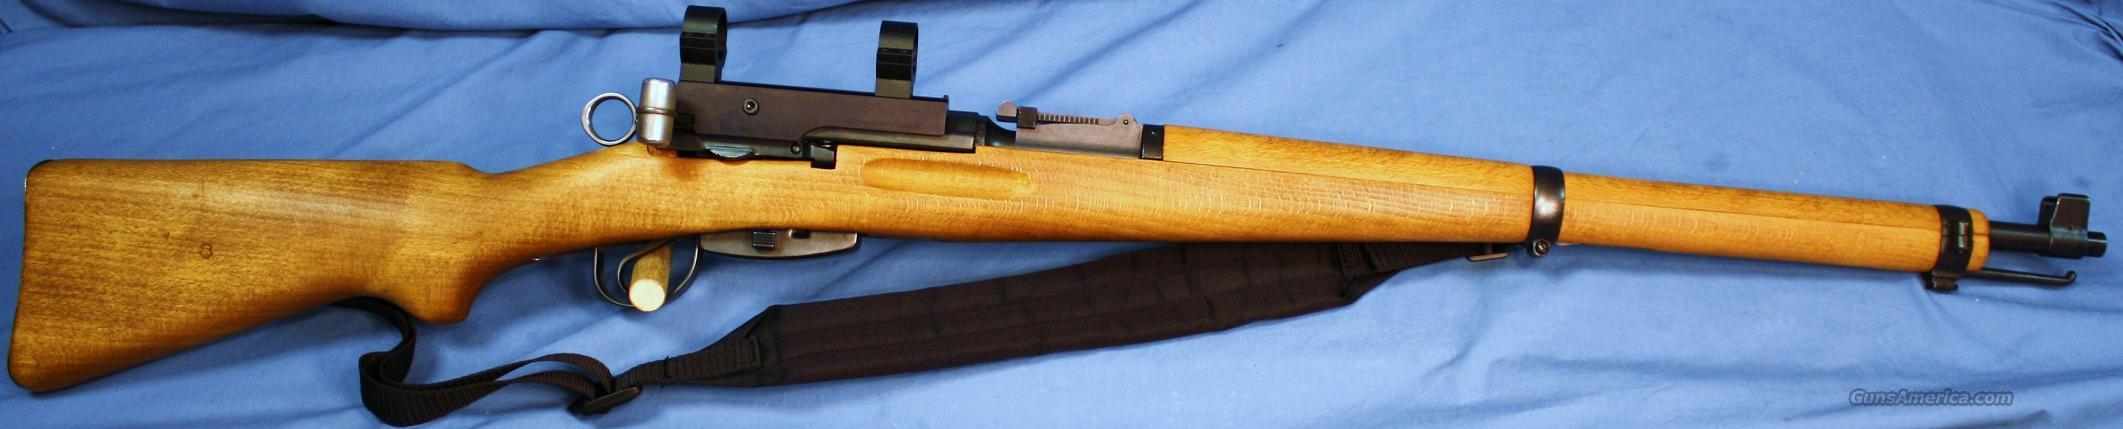 Swiss Model K-31 Straight-Pull Bolt Action Rifle 7.5x55mm  Guns > Rifles > Military Misc. Rifles Non-US > Shmidt Rubin